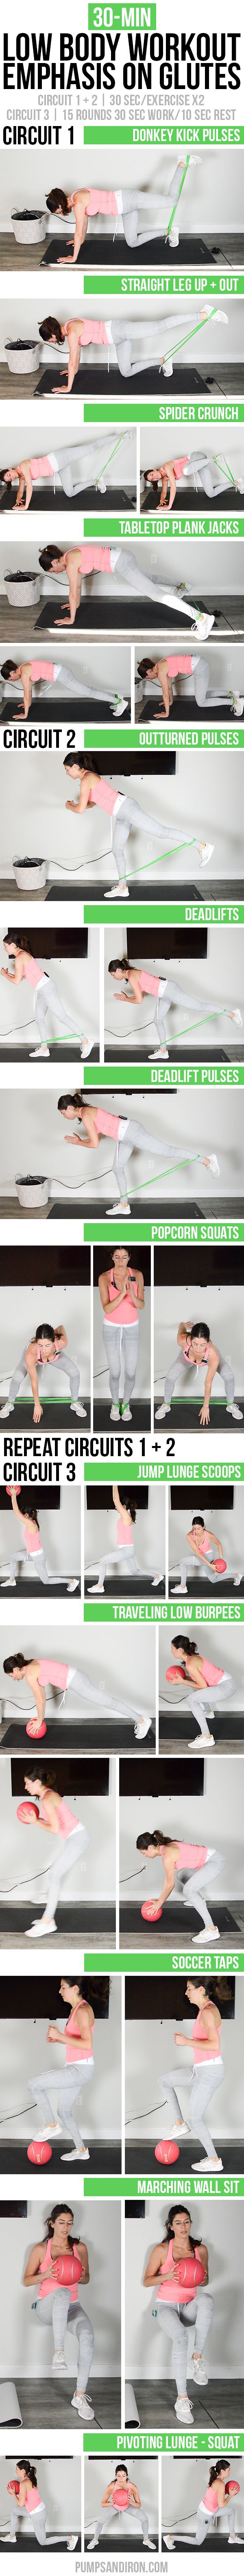 Youll need a resistance band and medicine ball for this 30-minute low body workout focusing on the glutes. Video included so you can follow along at home or the gym! | Pumps Iron